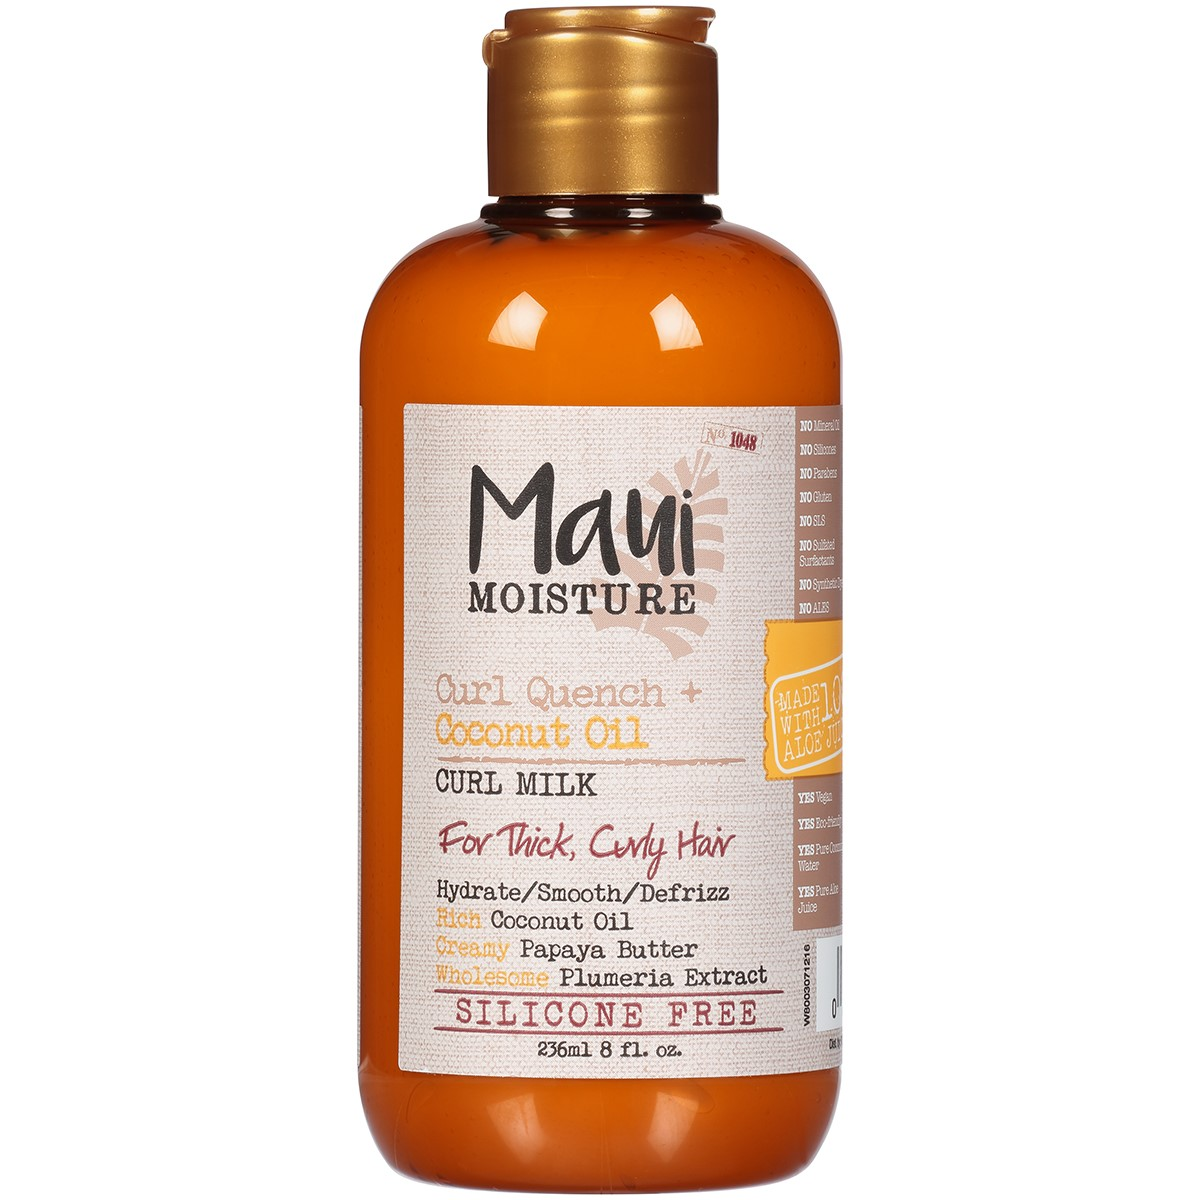 Maui Moisture Curl Quench + Coconut Oil Curl Milk, 8 Oz